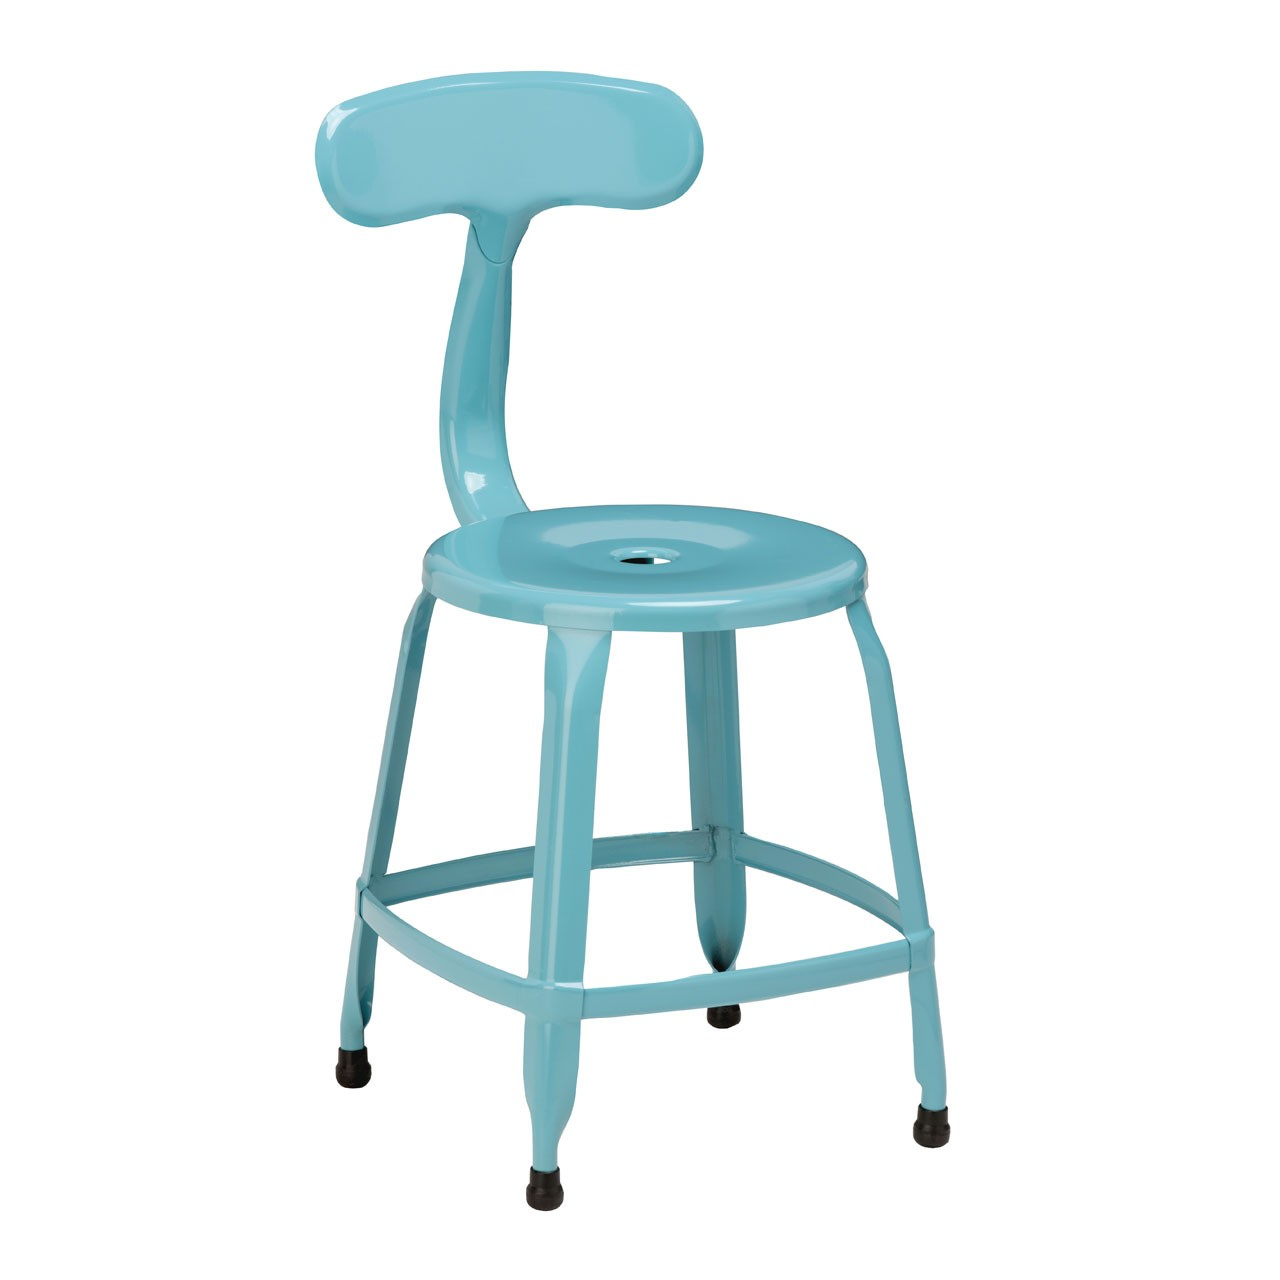 4 x Disc Chair Blue Powder Coated Metal